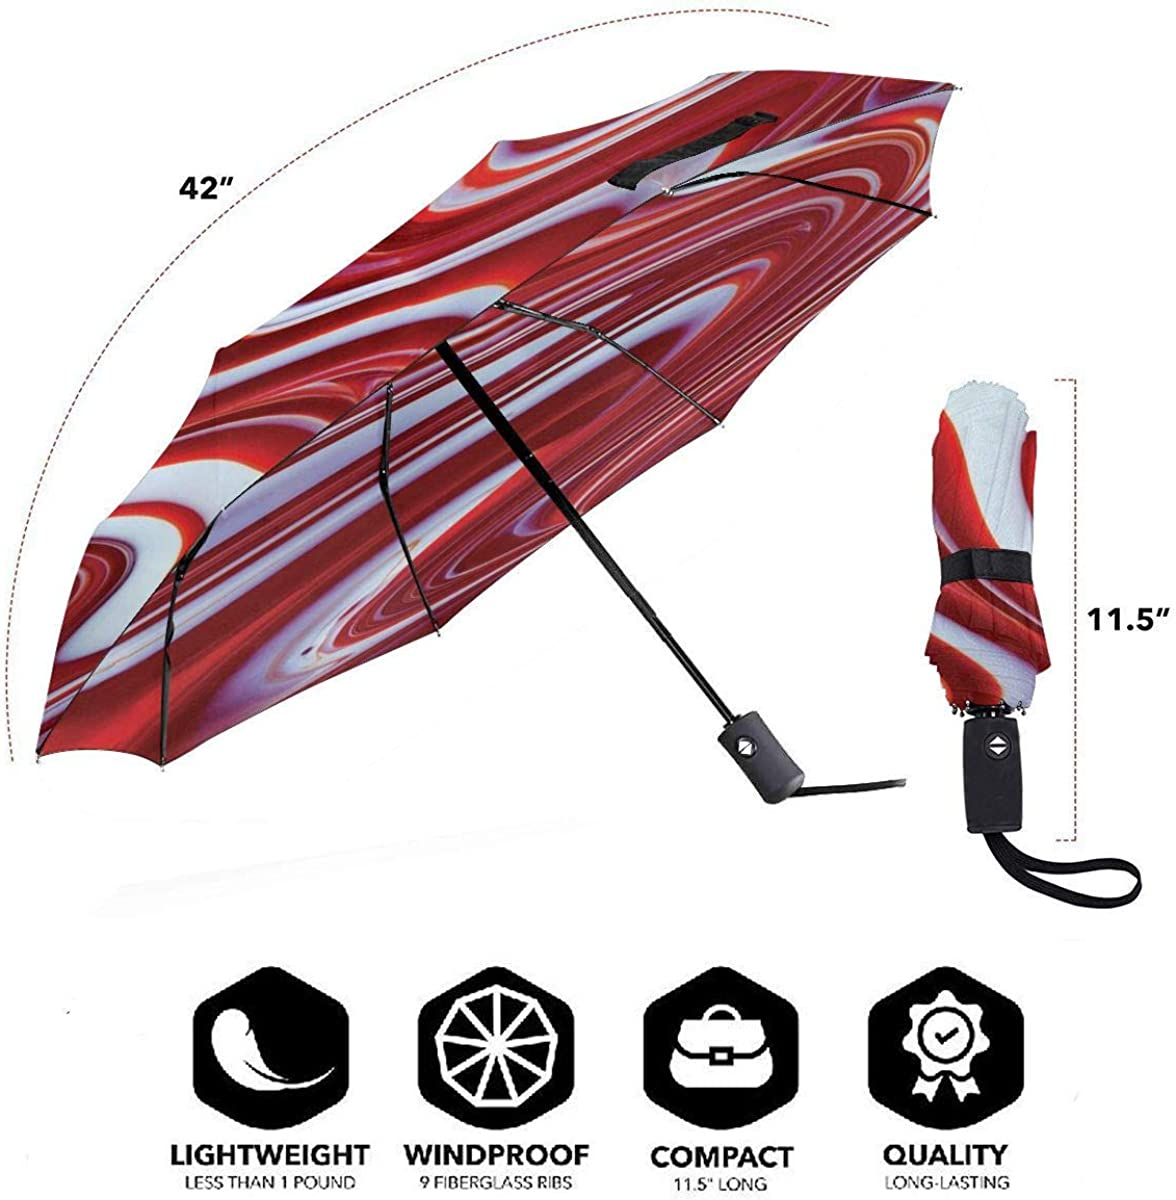 Marble Swirl Compact Travel Umbrella Windproof Reinforced Canopy 8 Ribs Umbrella Auto Open And Close Button Personalized